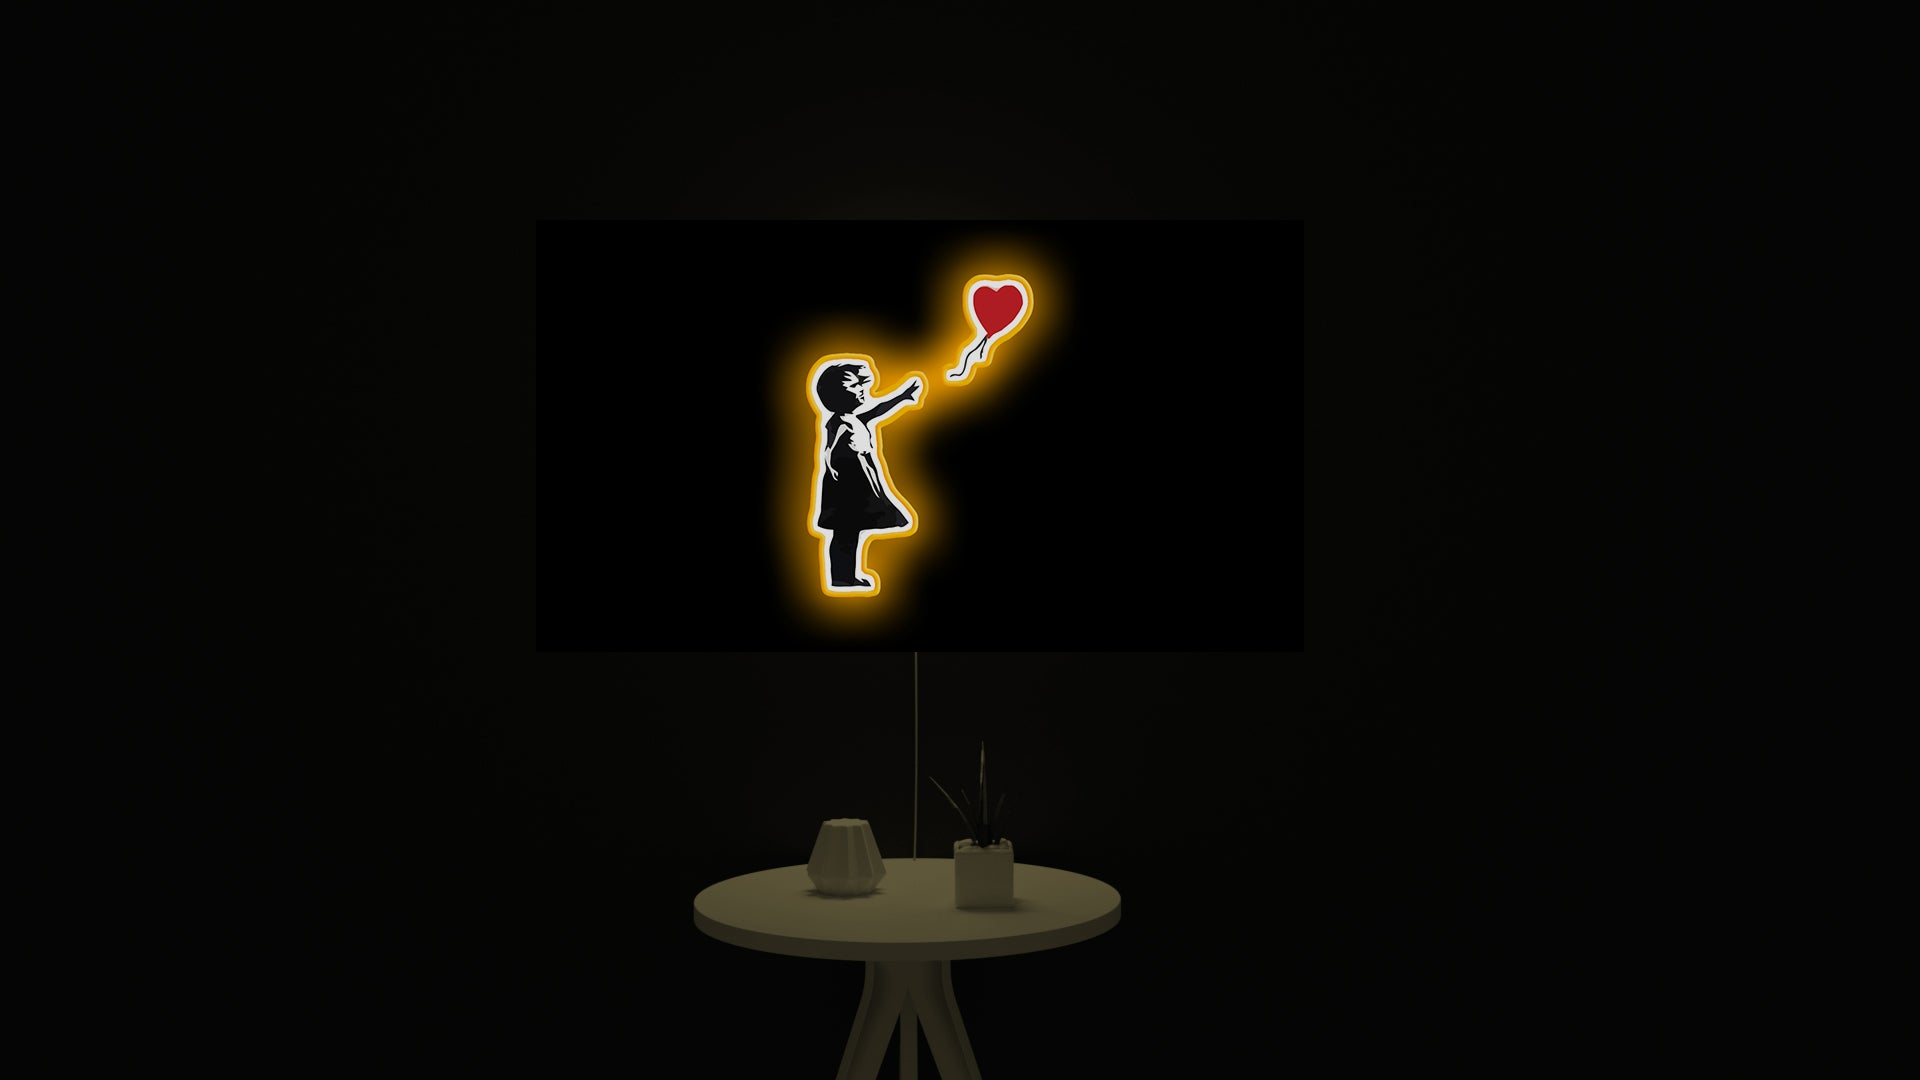 Banksy - Girl with Balloon led light sign